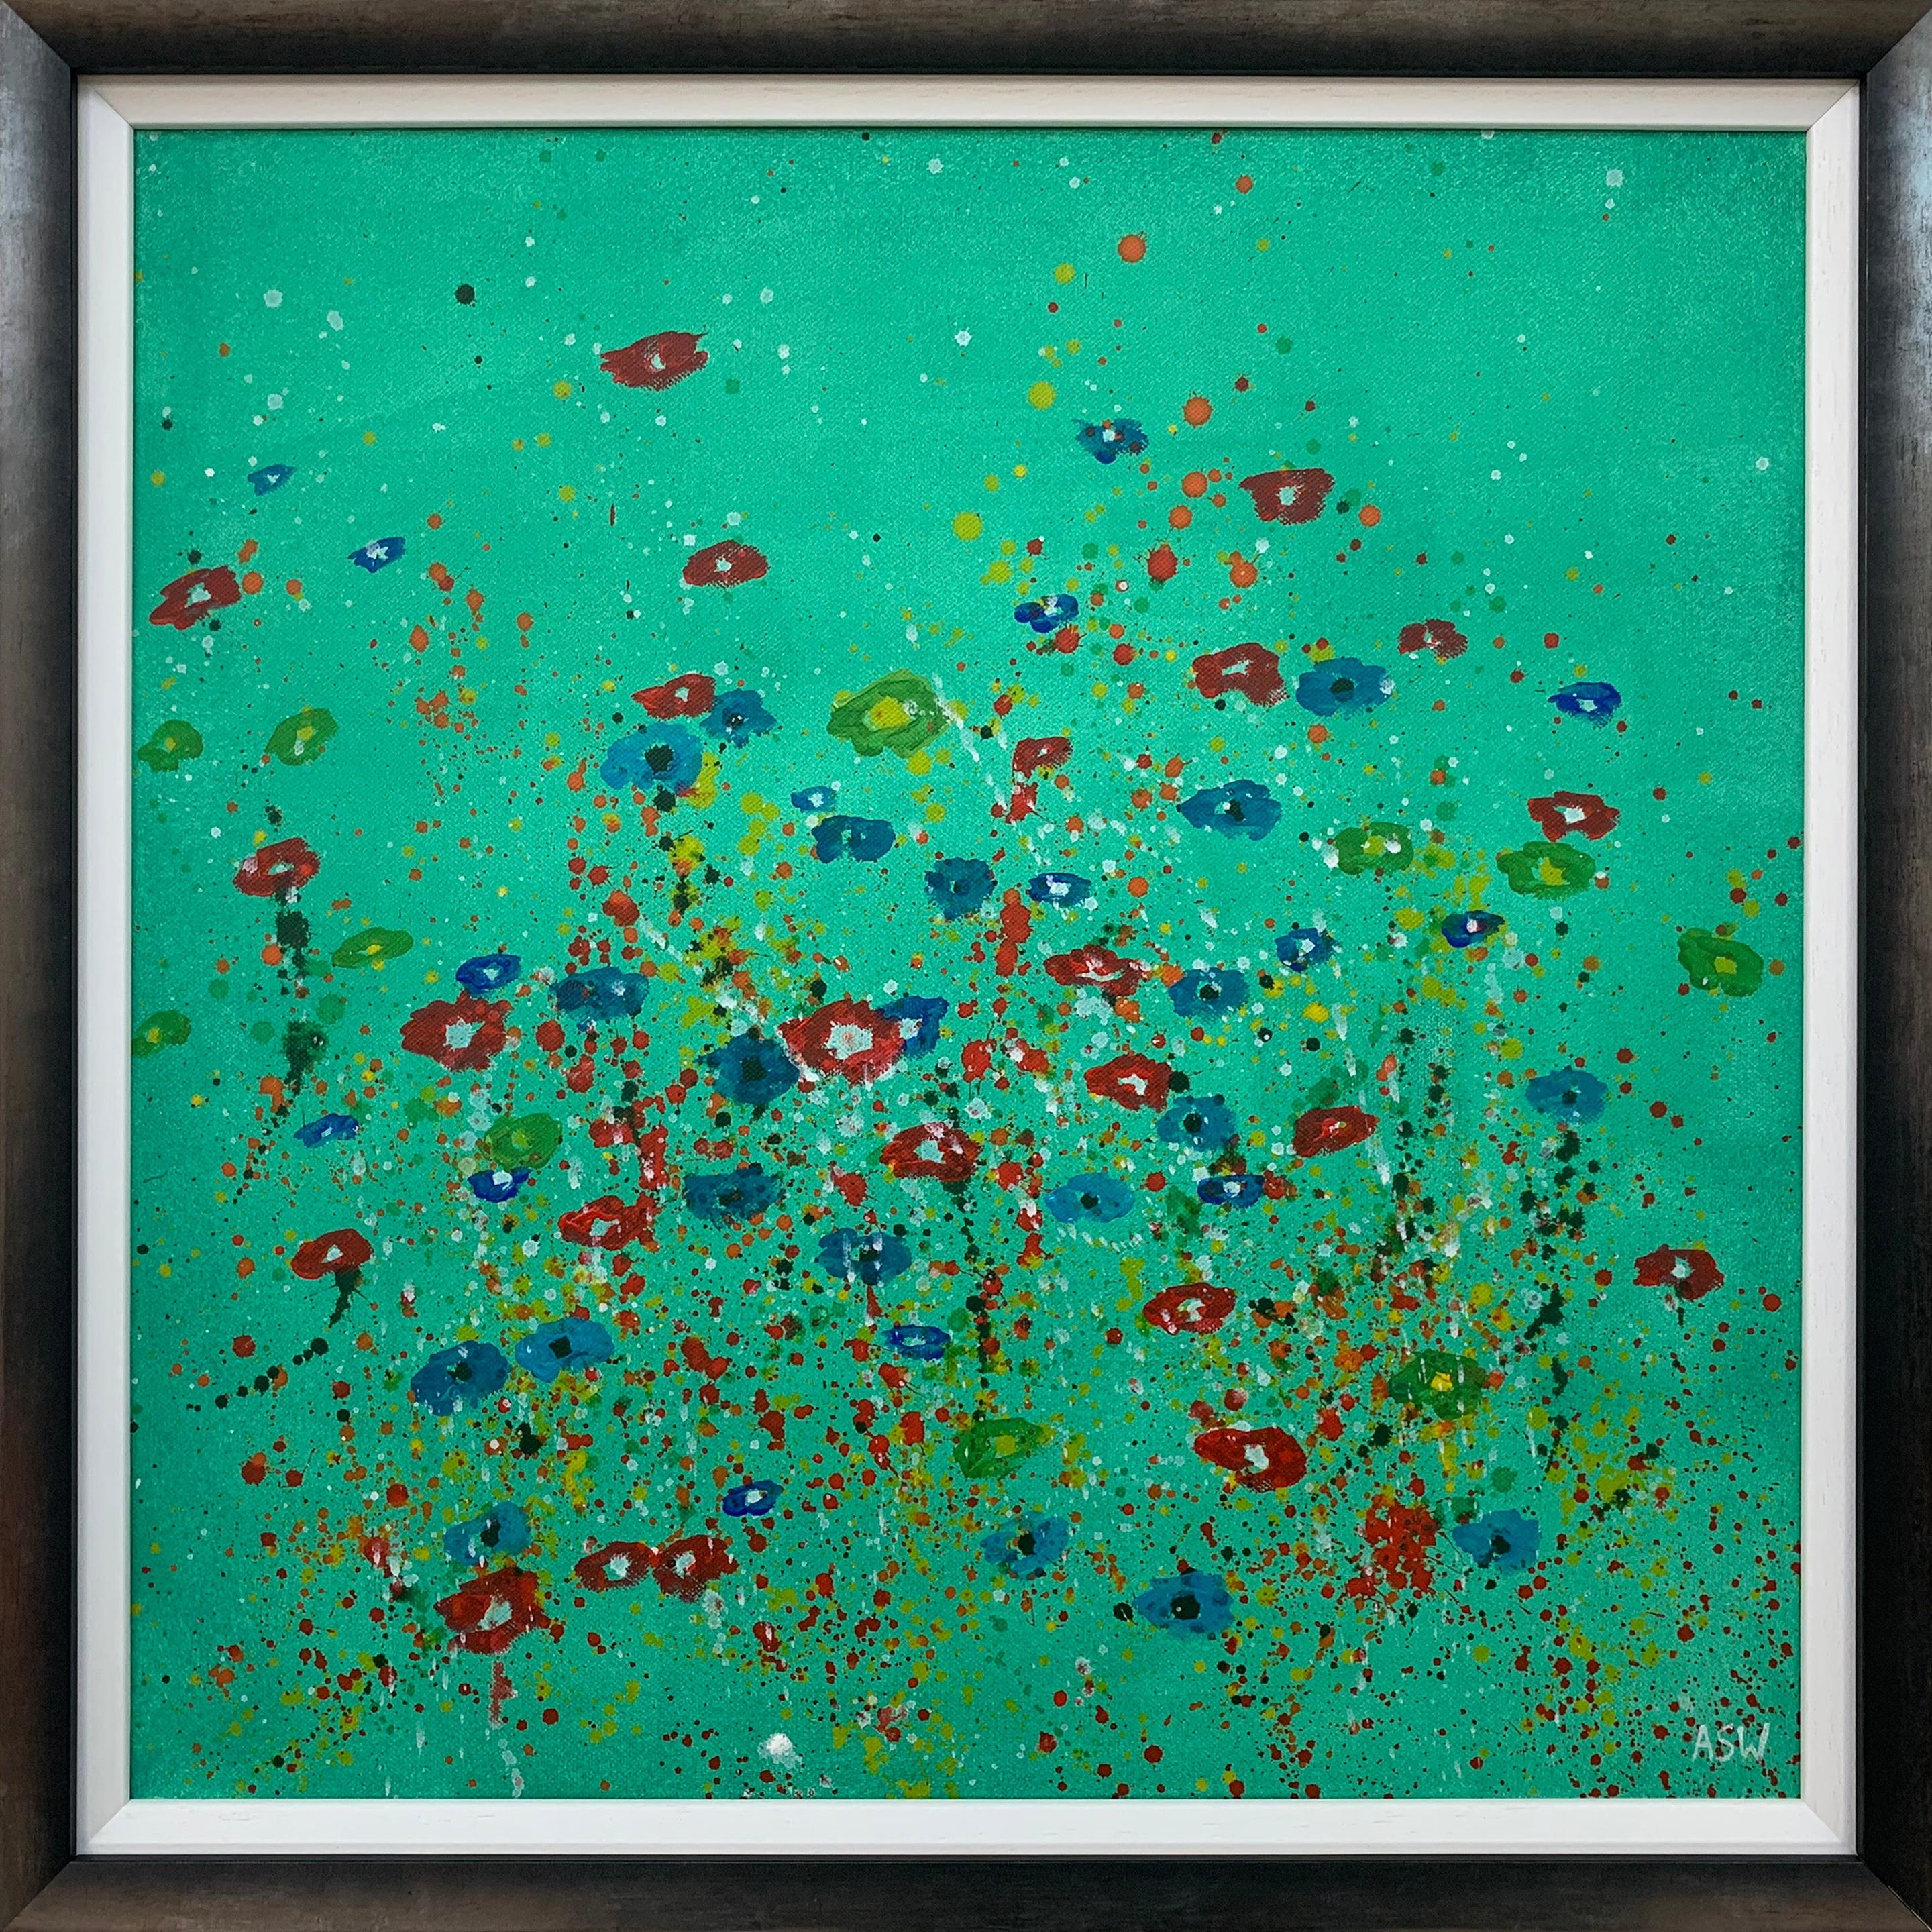 Abstract Red Blue Flowers on Green Background by Contemporary British Artist